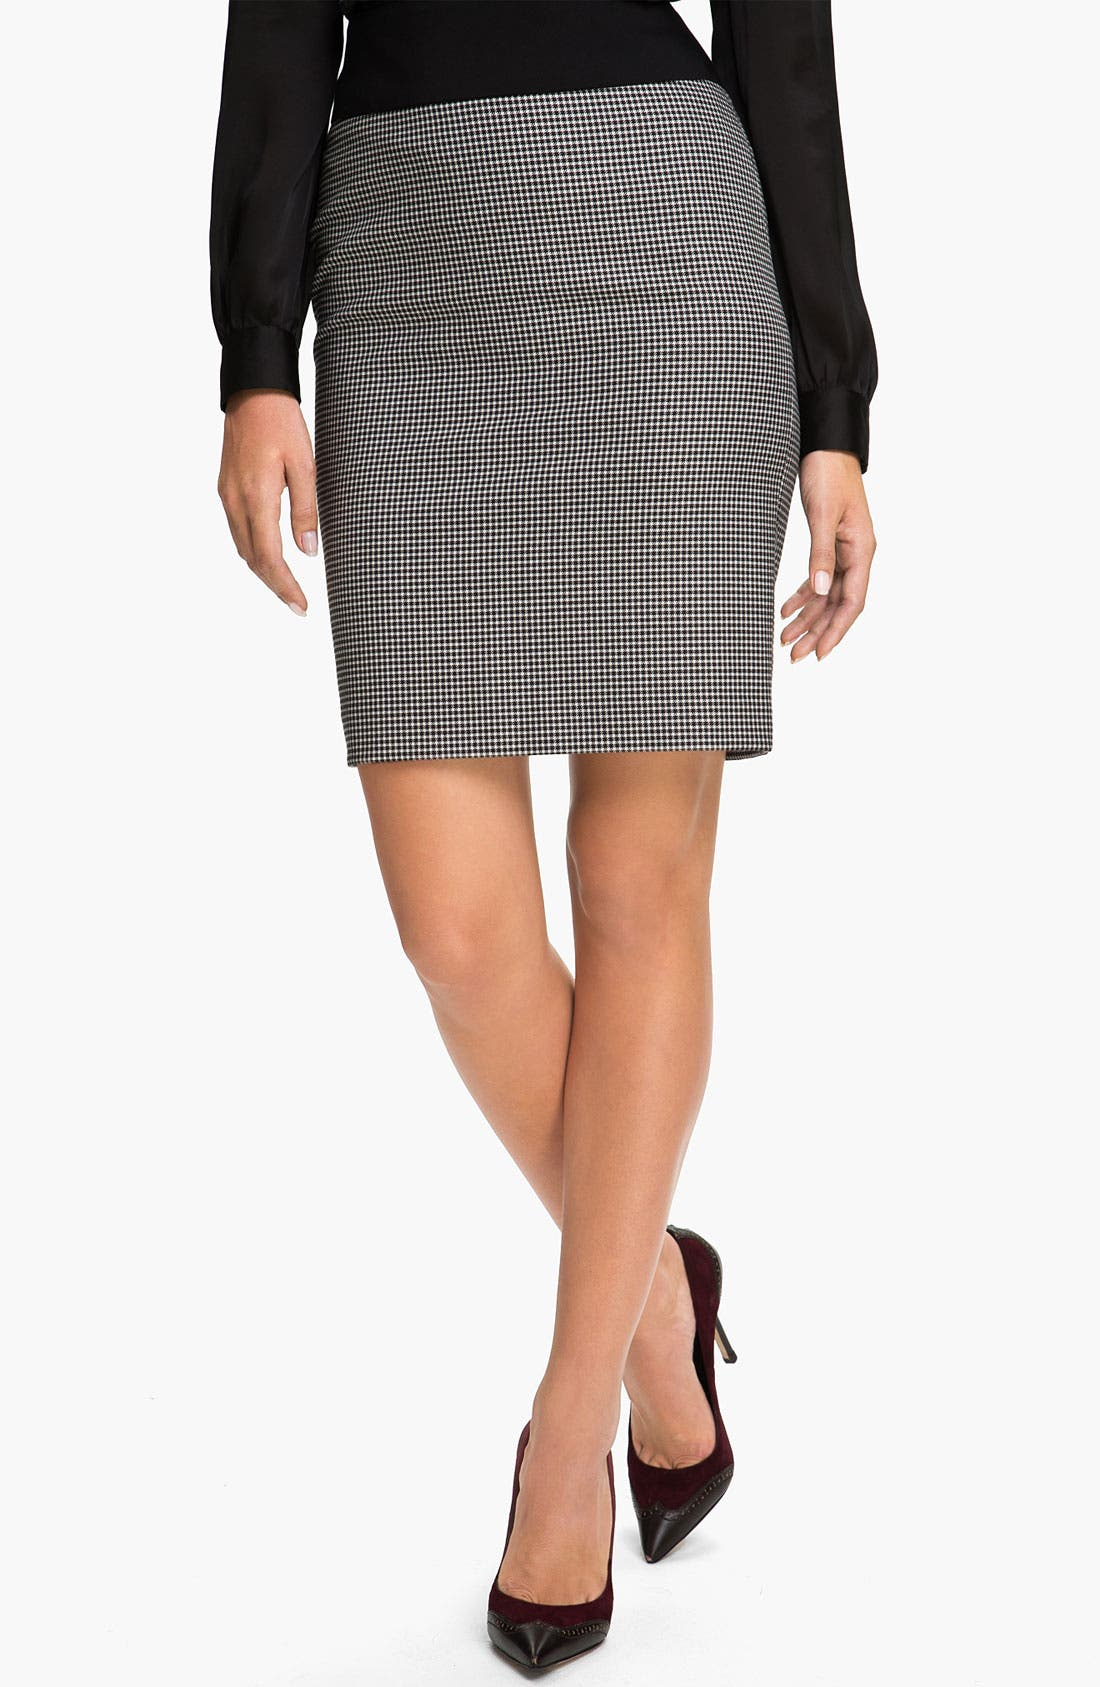 Alternate Image 1 Selected - Vince Camuto Houndstooth Skirt